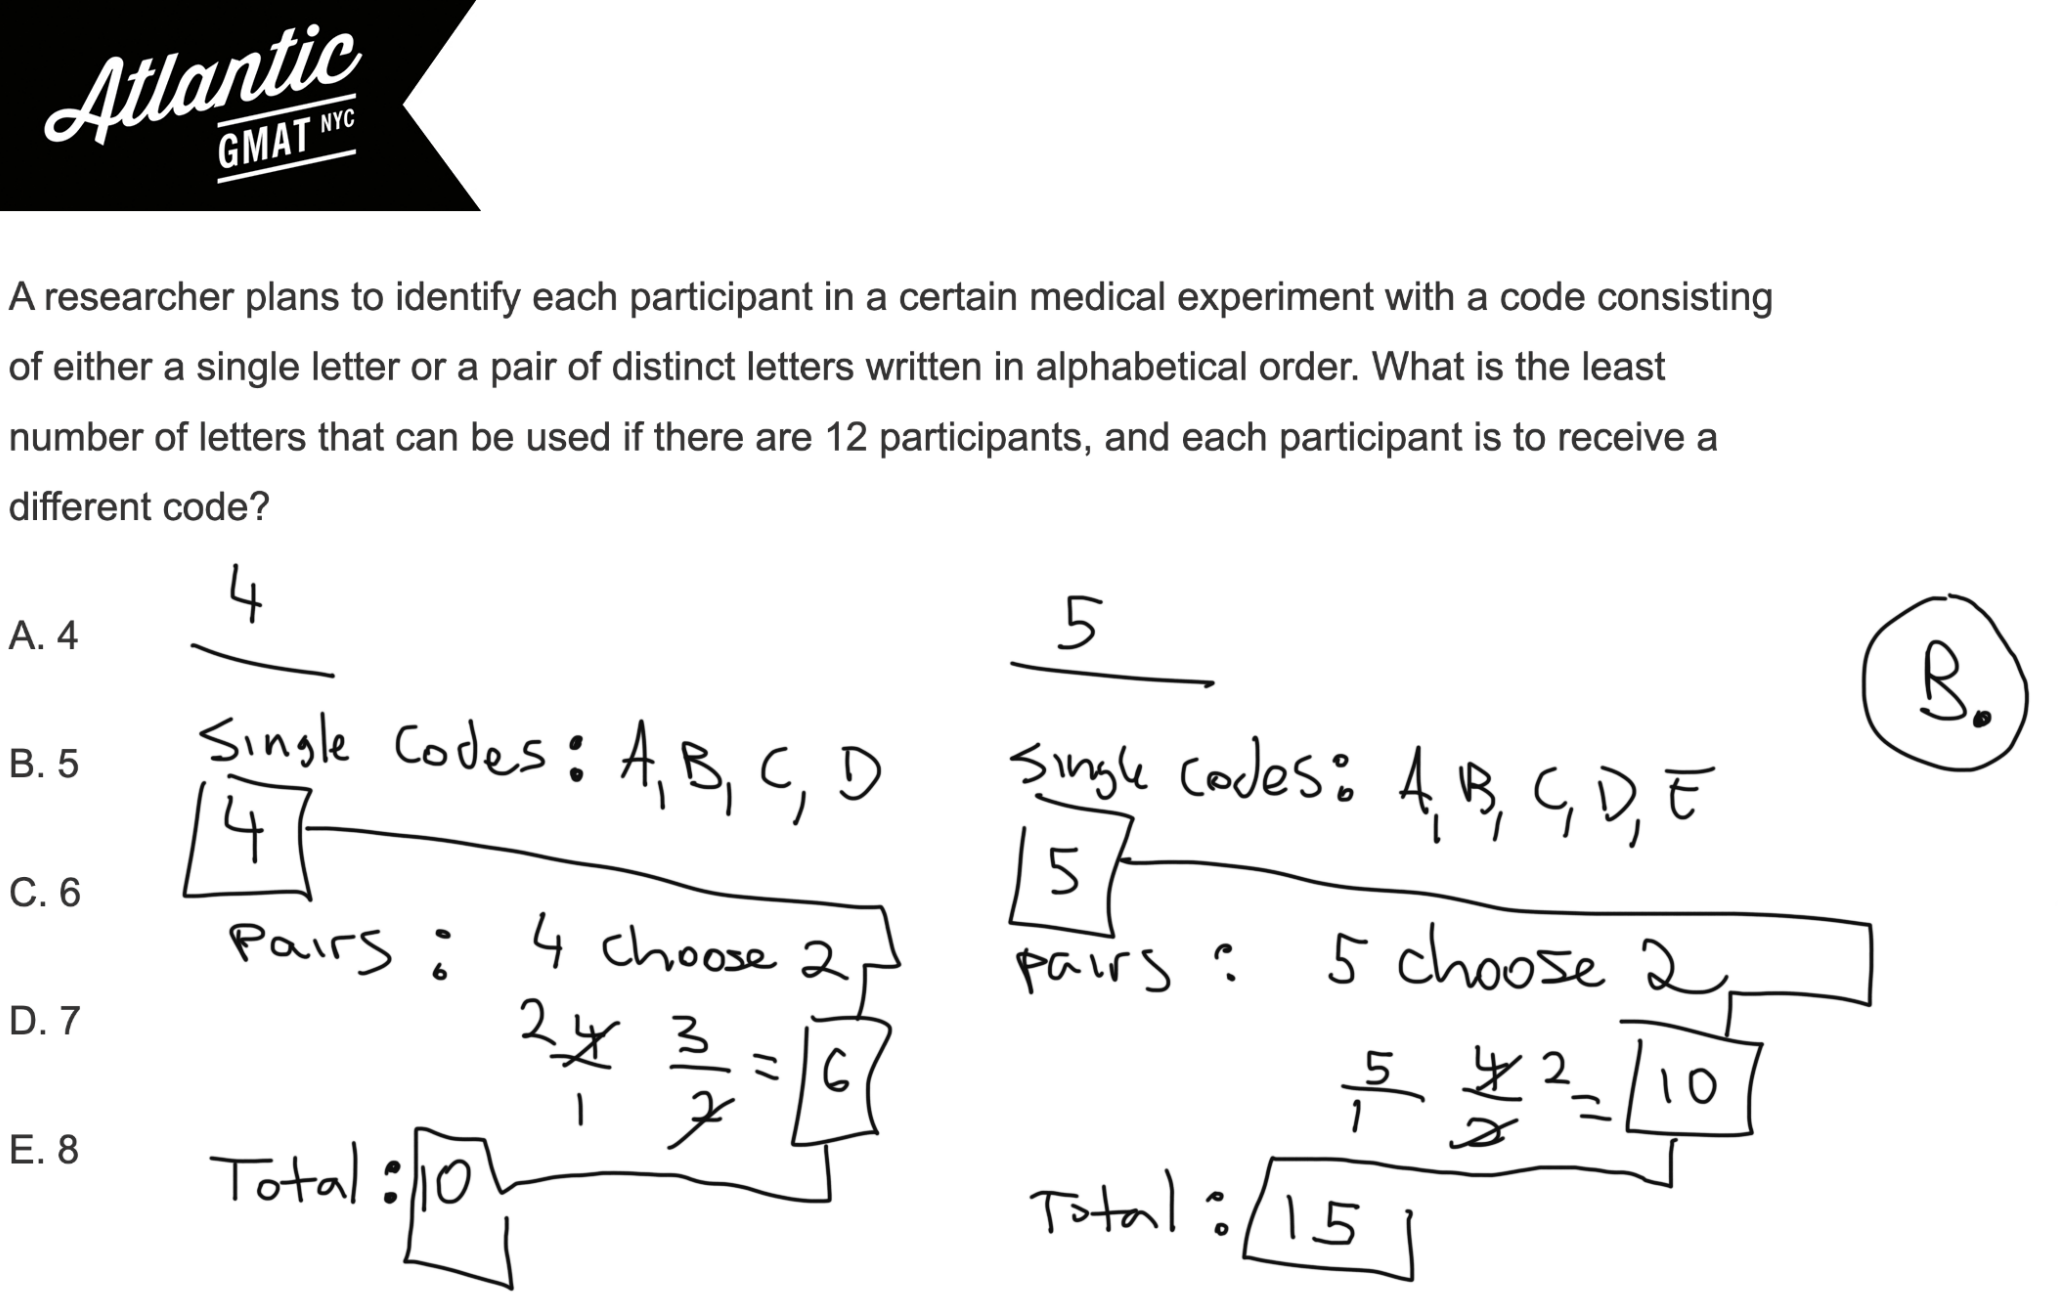 A researcher plans to identify each participant in a certain medical experiment GMAT Explanation Diagram